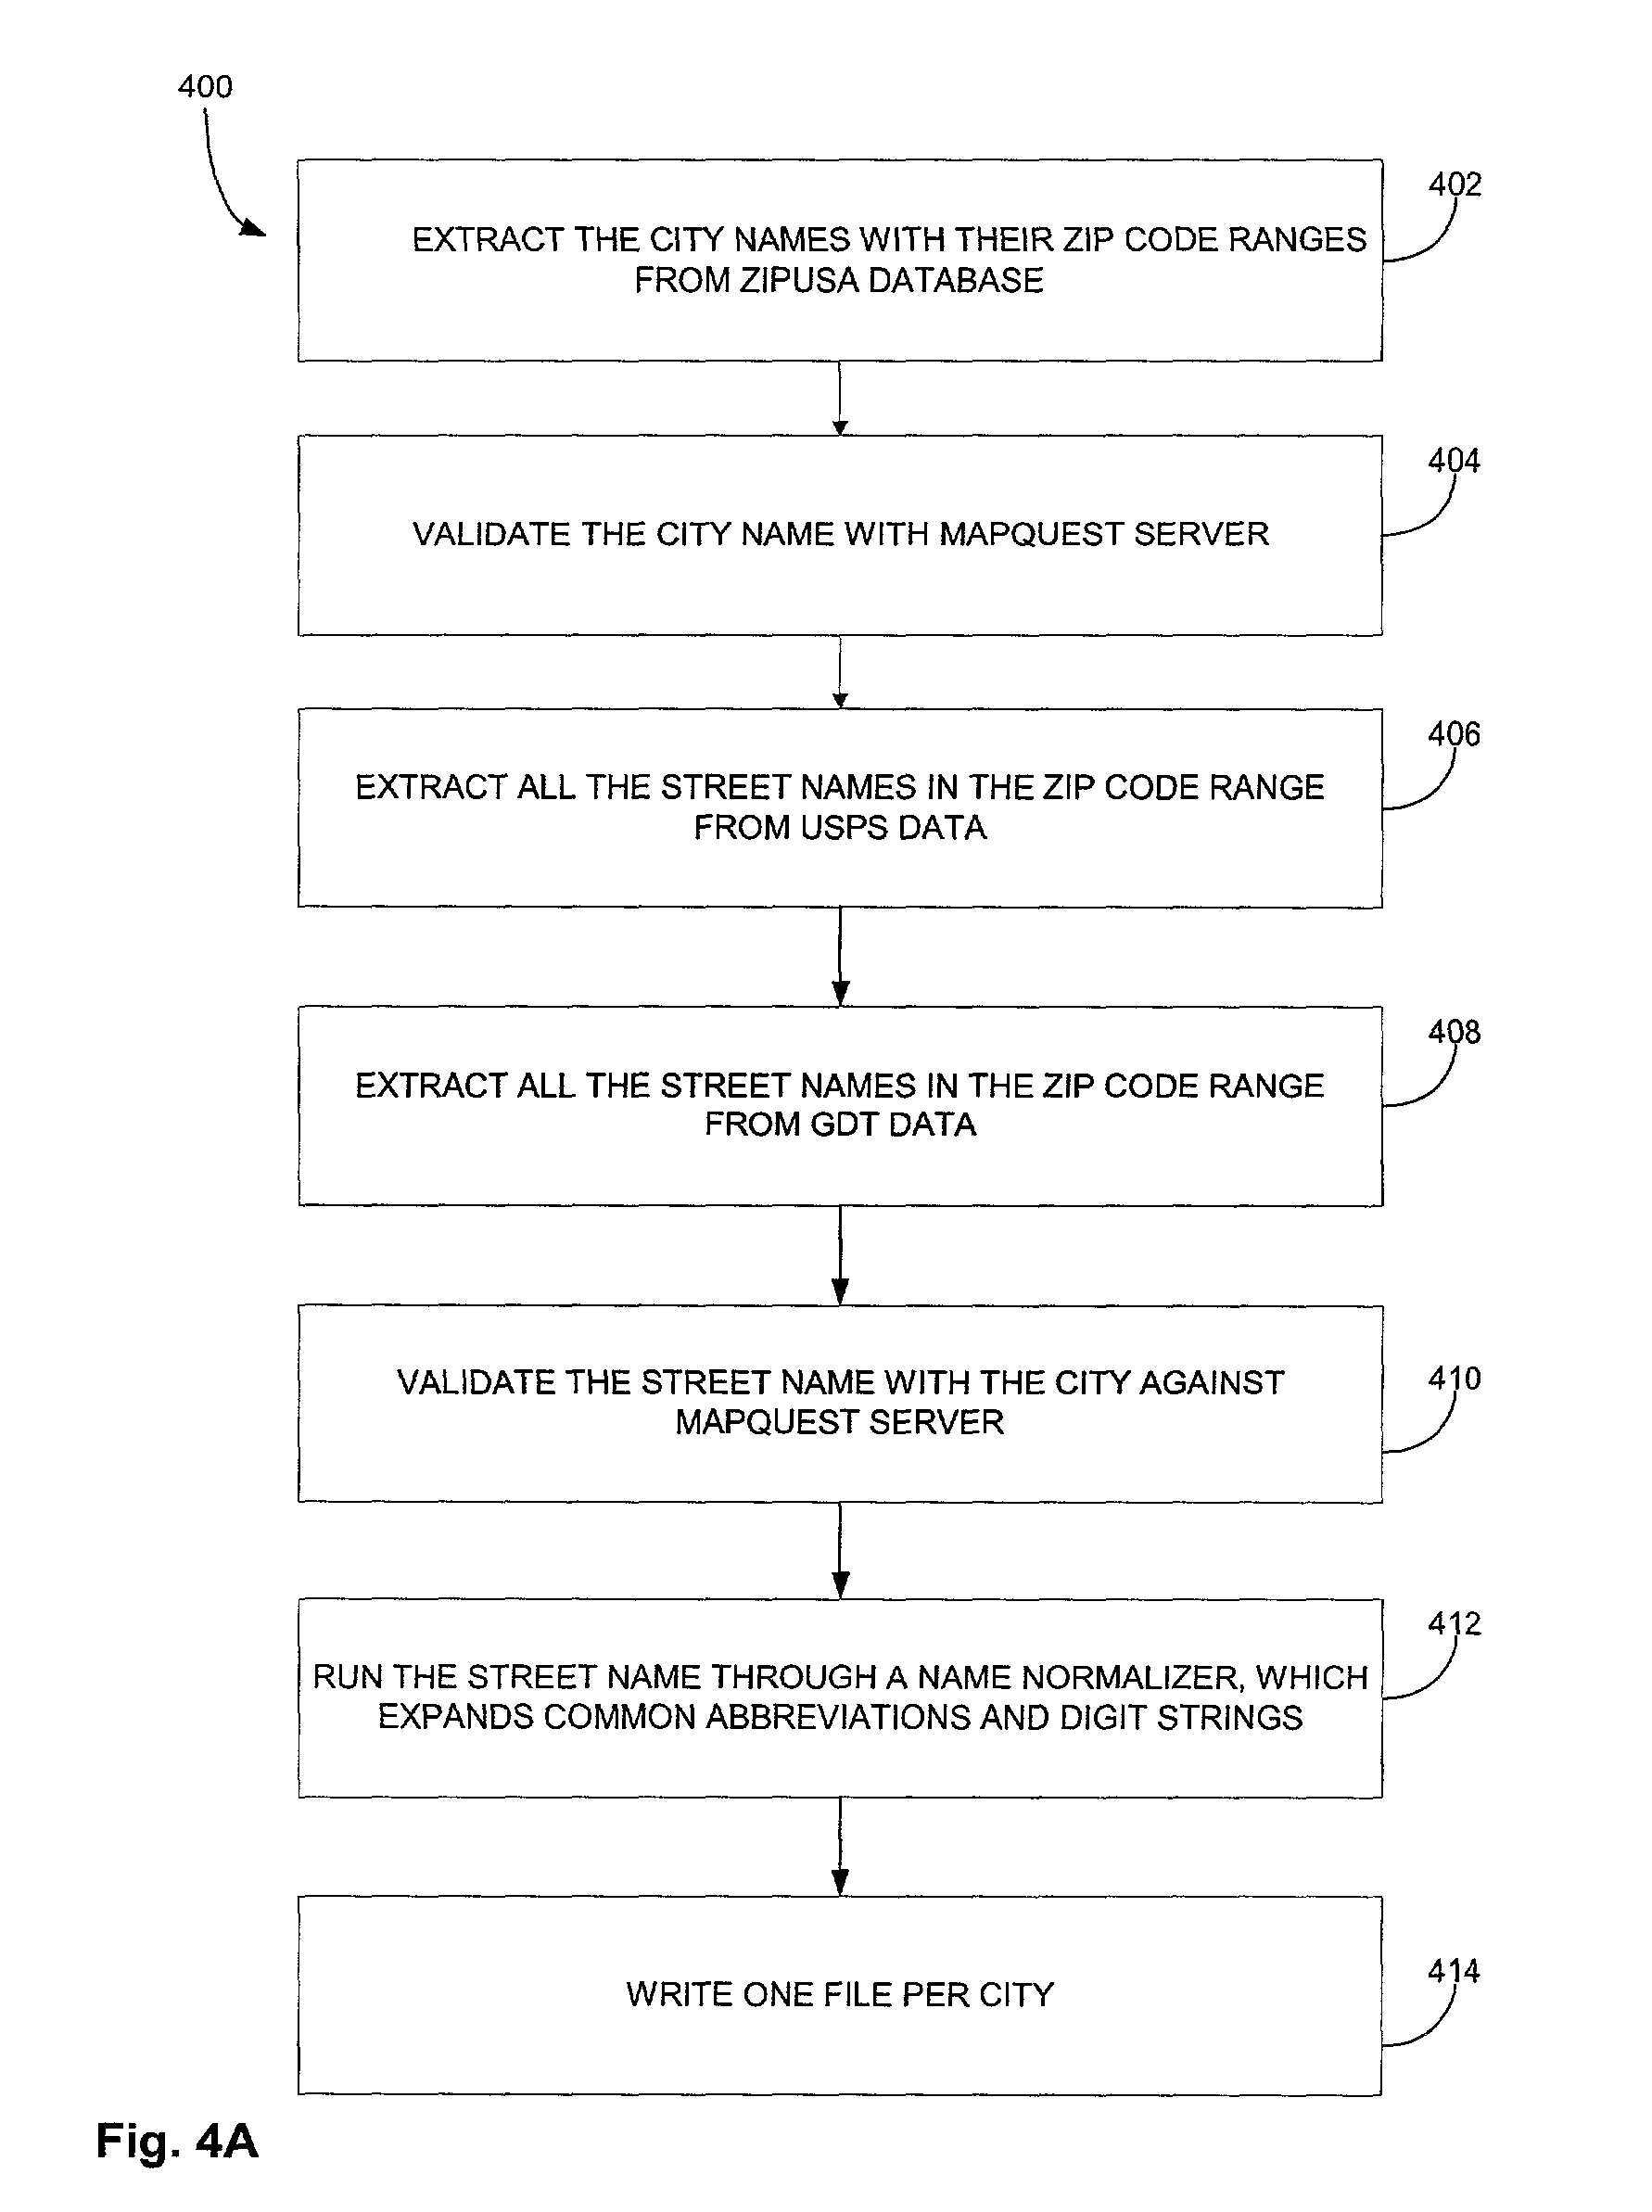 Patent US System Method And Computer Program Product For - Us zip code range